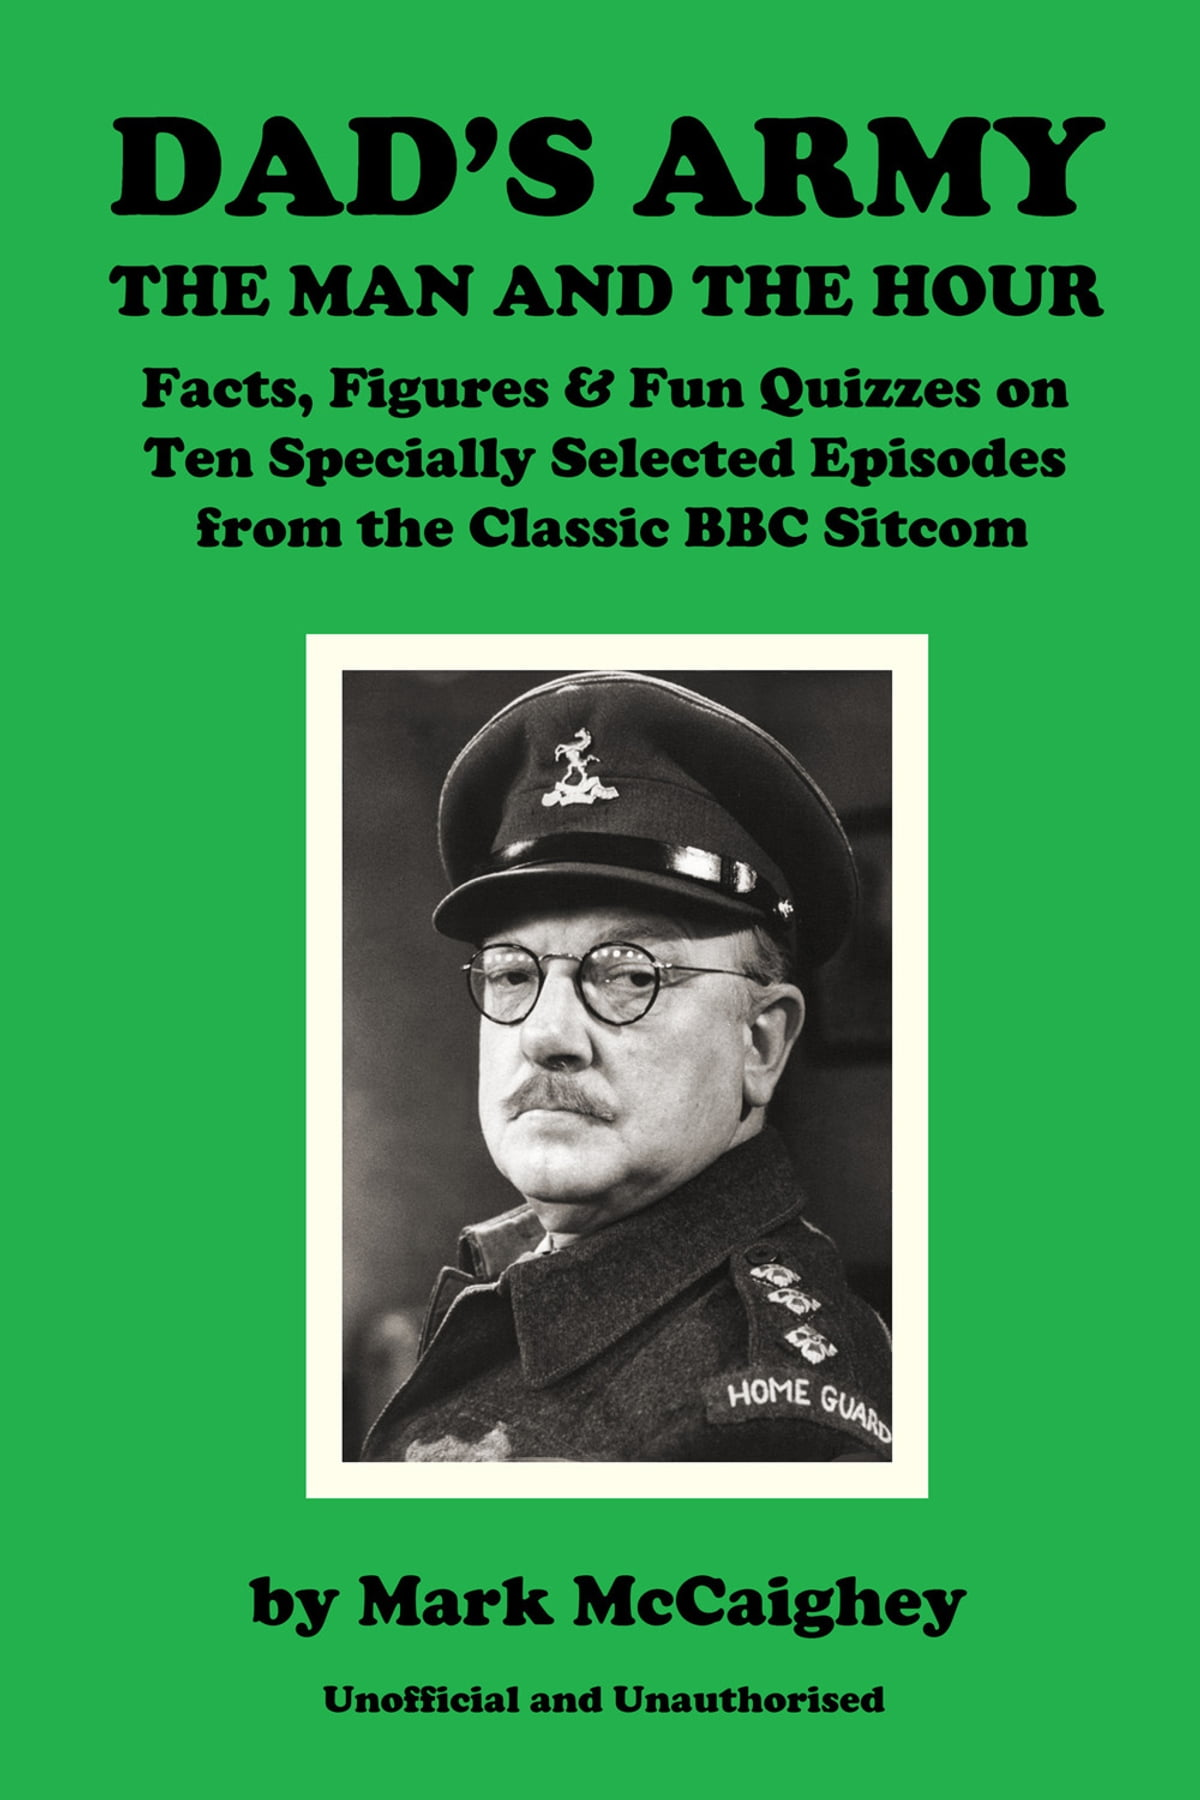 Dads army the man and the hour ebook by mark mccaighey dads army the man and the hour ebook by mark mccaighey 9781785383465 rakuten kobo fandeluxe Document